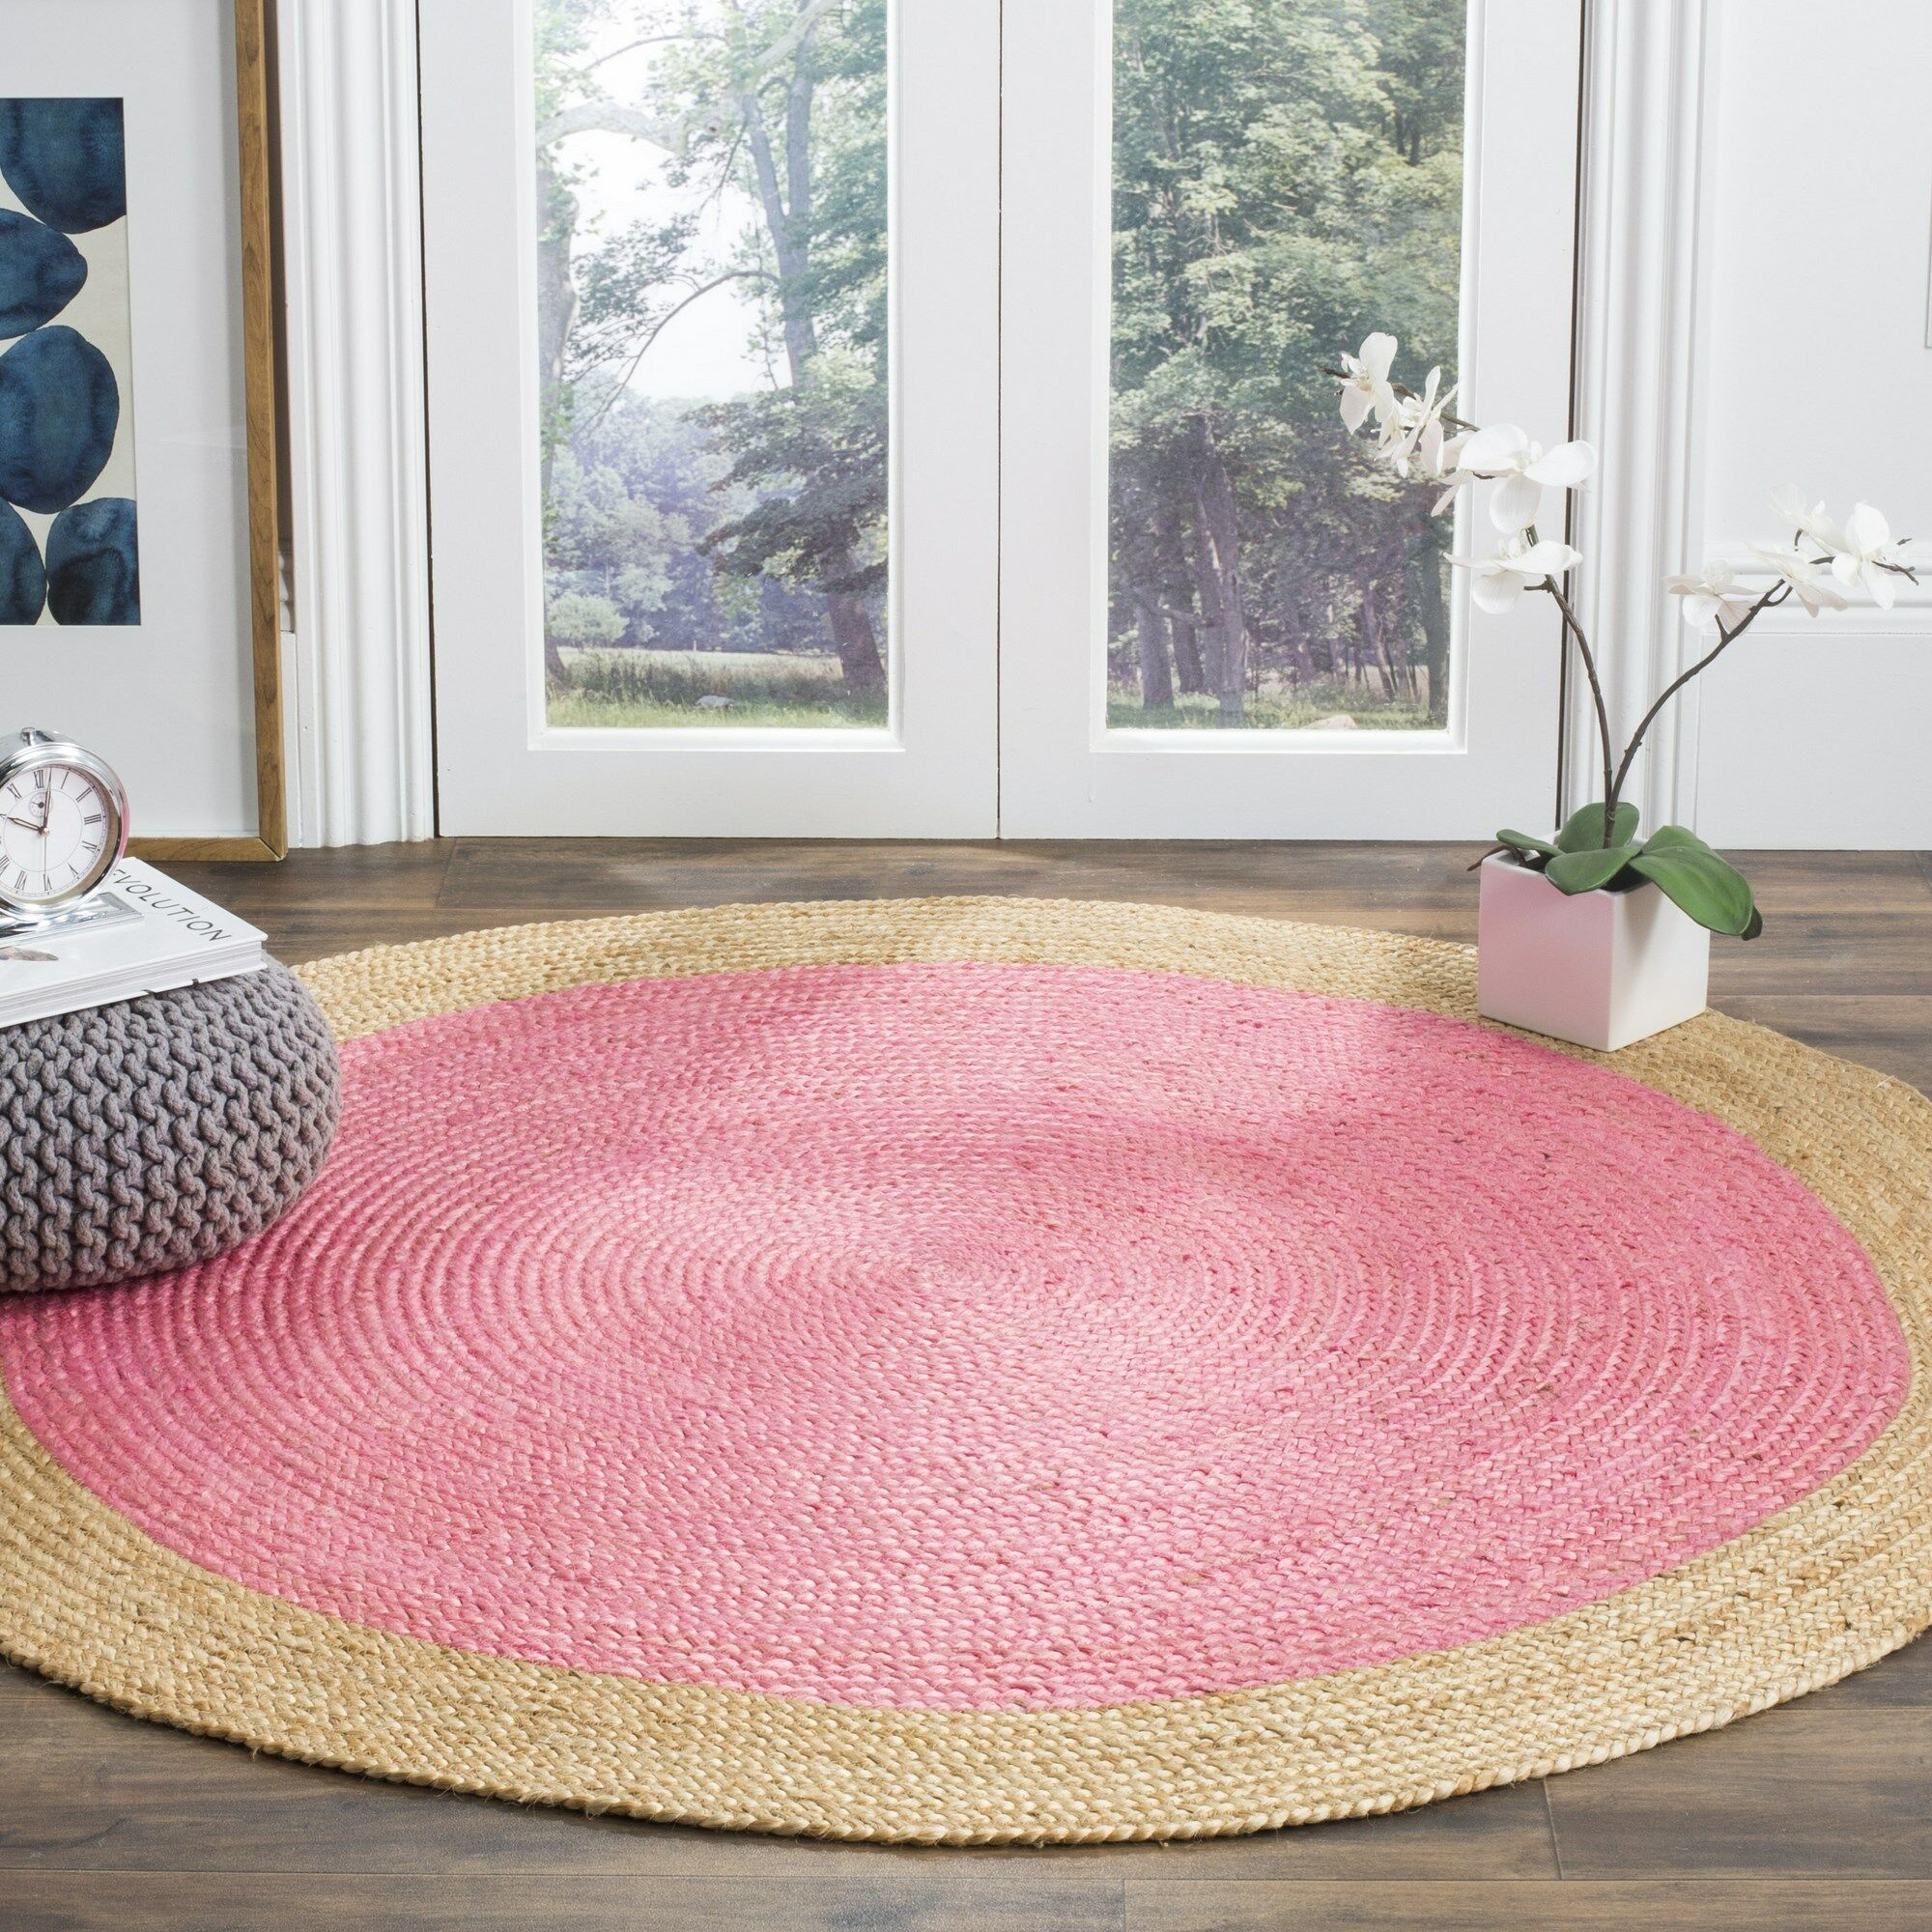 Cayla Fiber Hand-Woven Pink/Natural Area Rug Rug Size: Round 6'